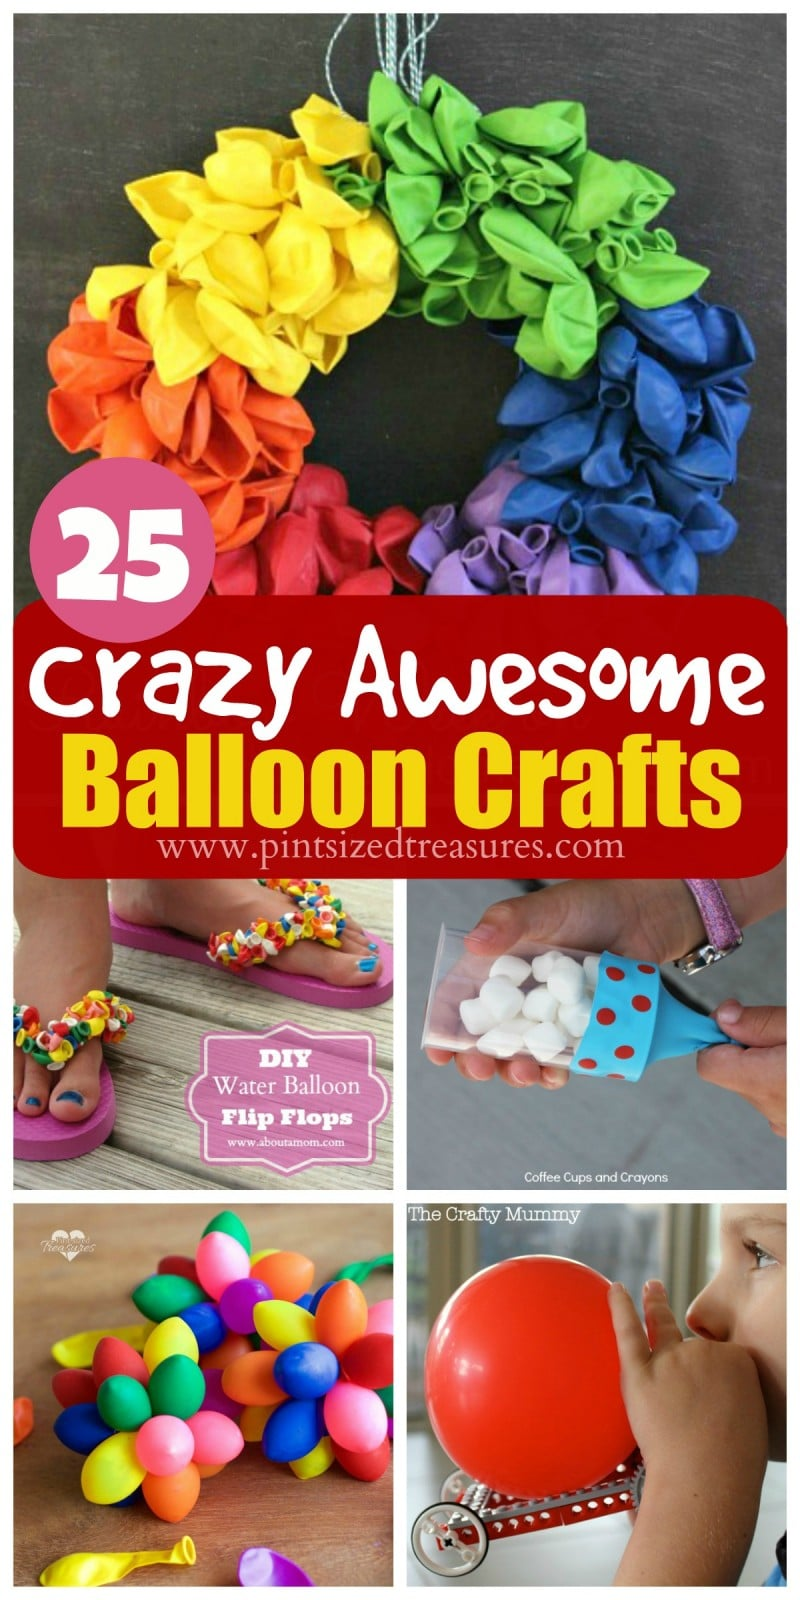 crafting with balloons